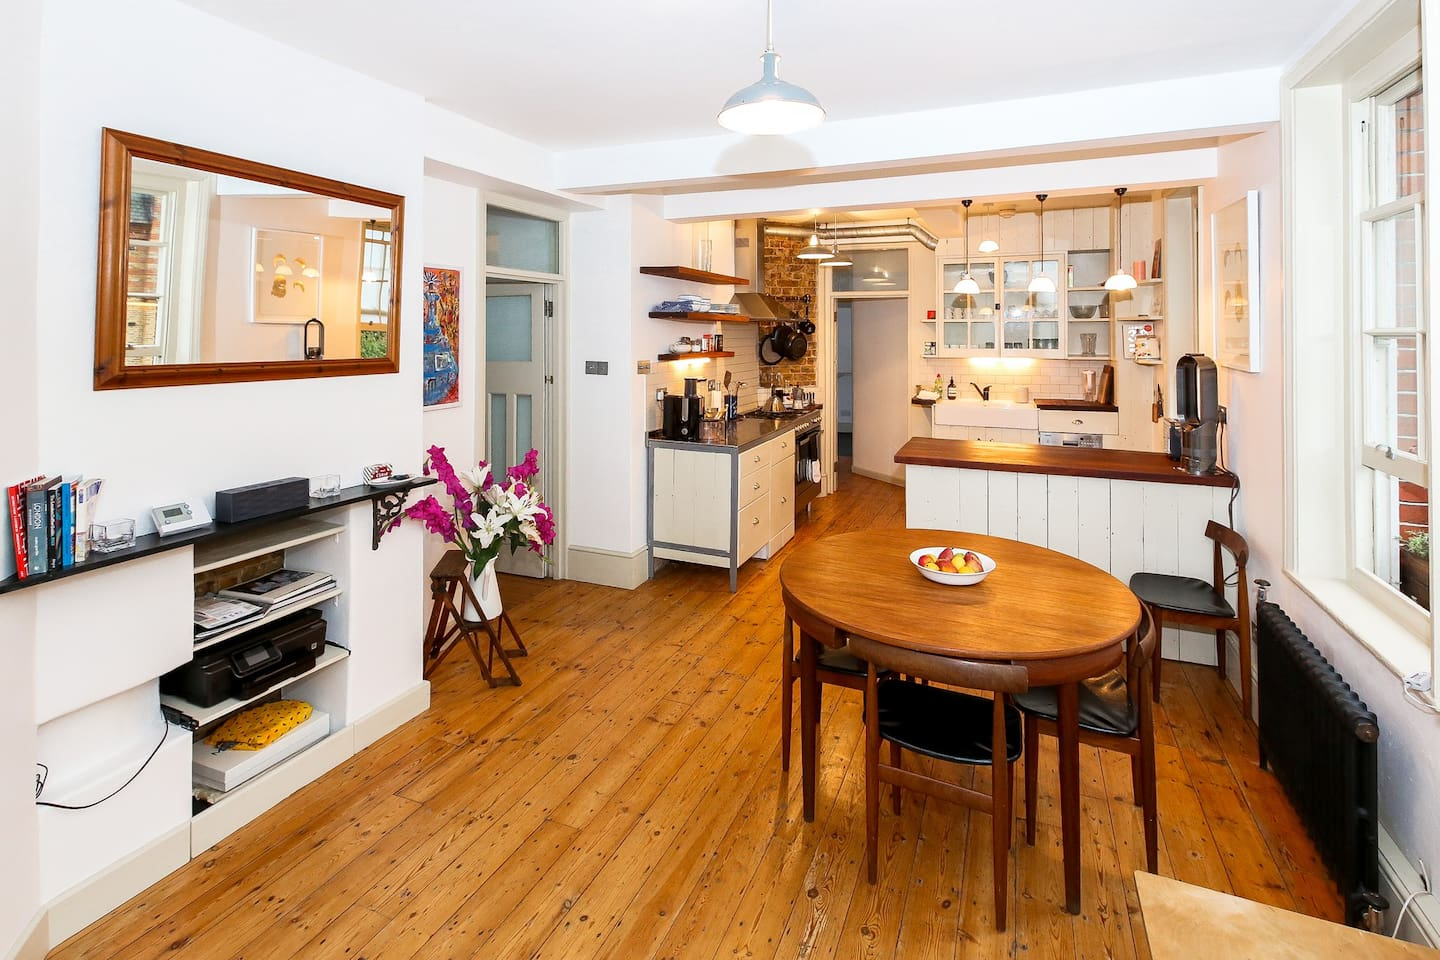 OPEN PLAN KITCHEN / DINING ROOM / LOUNGE